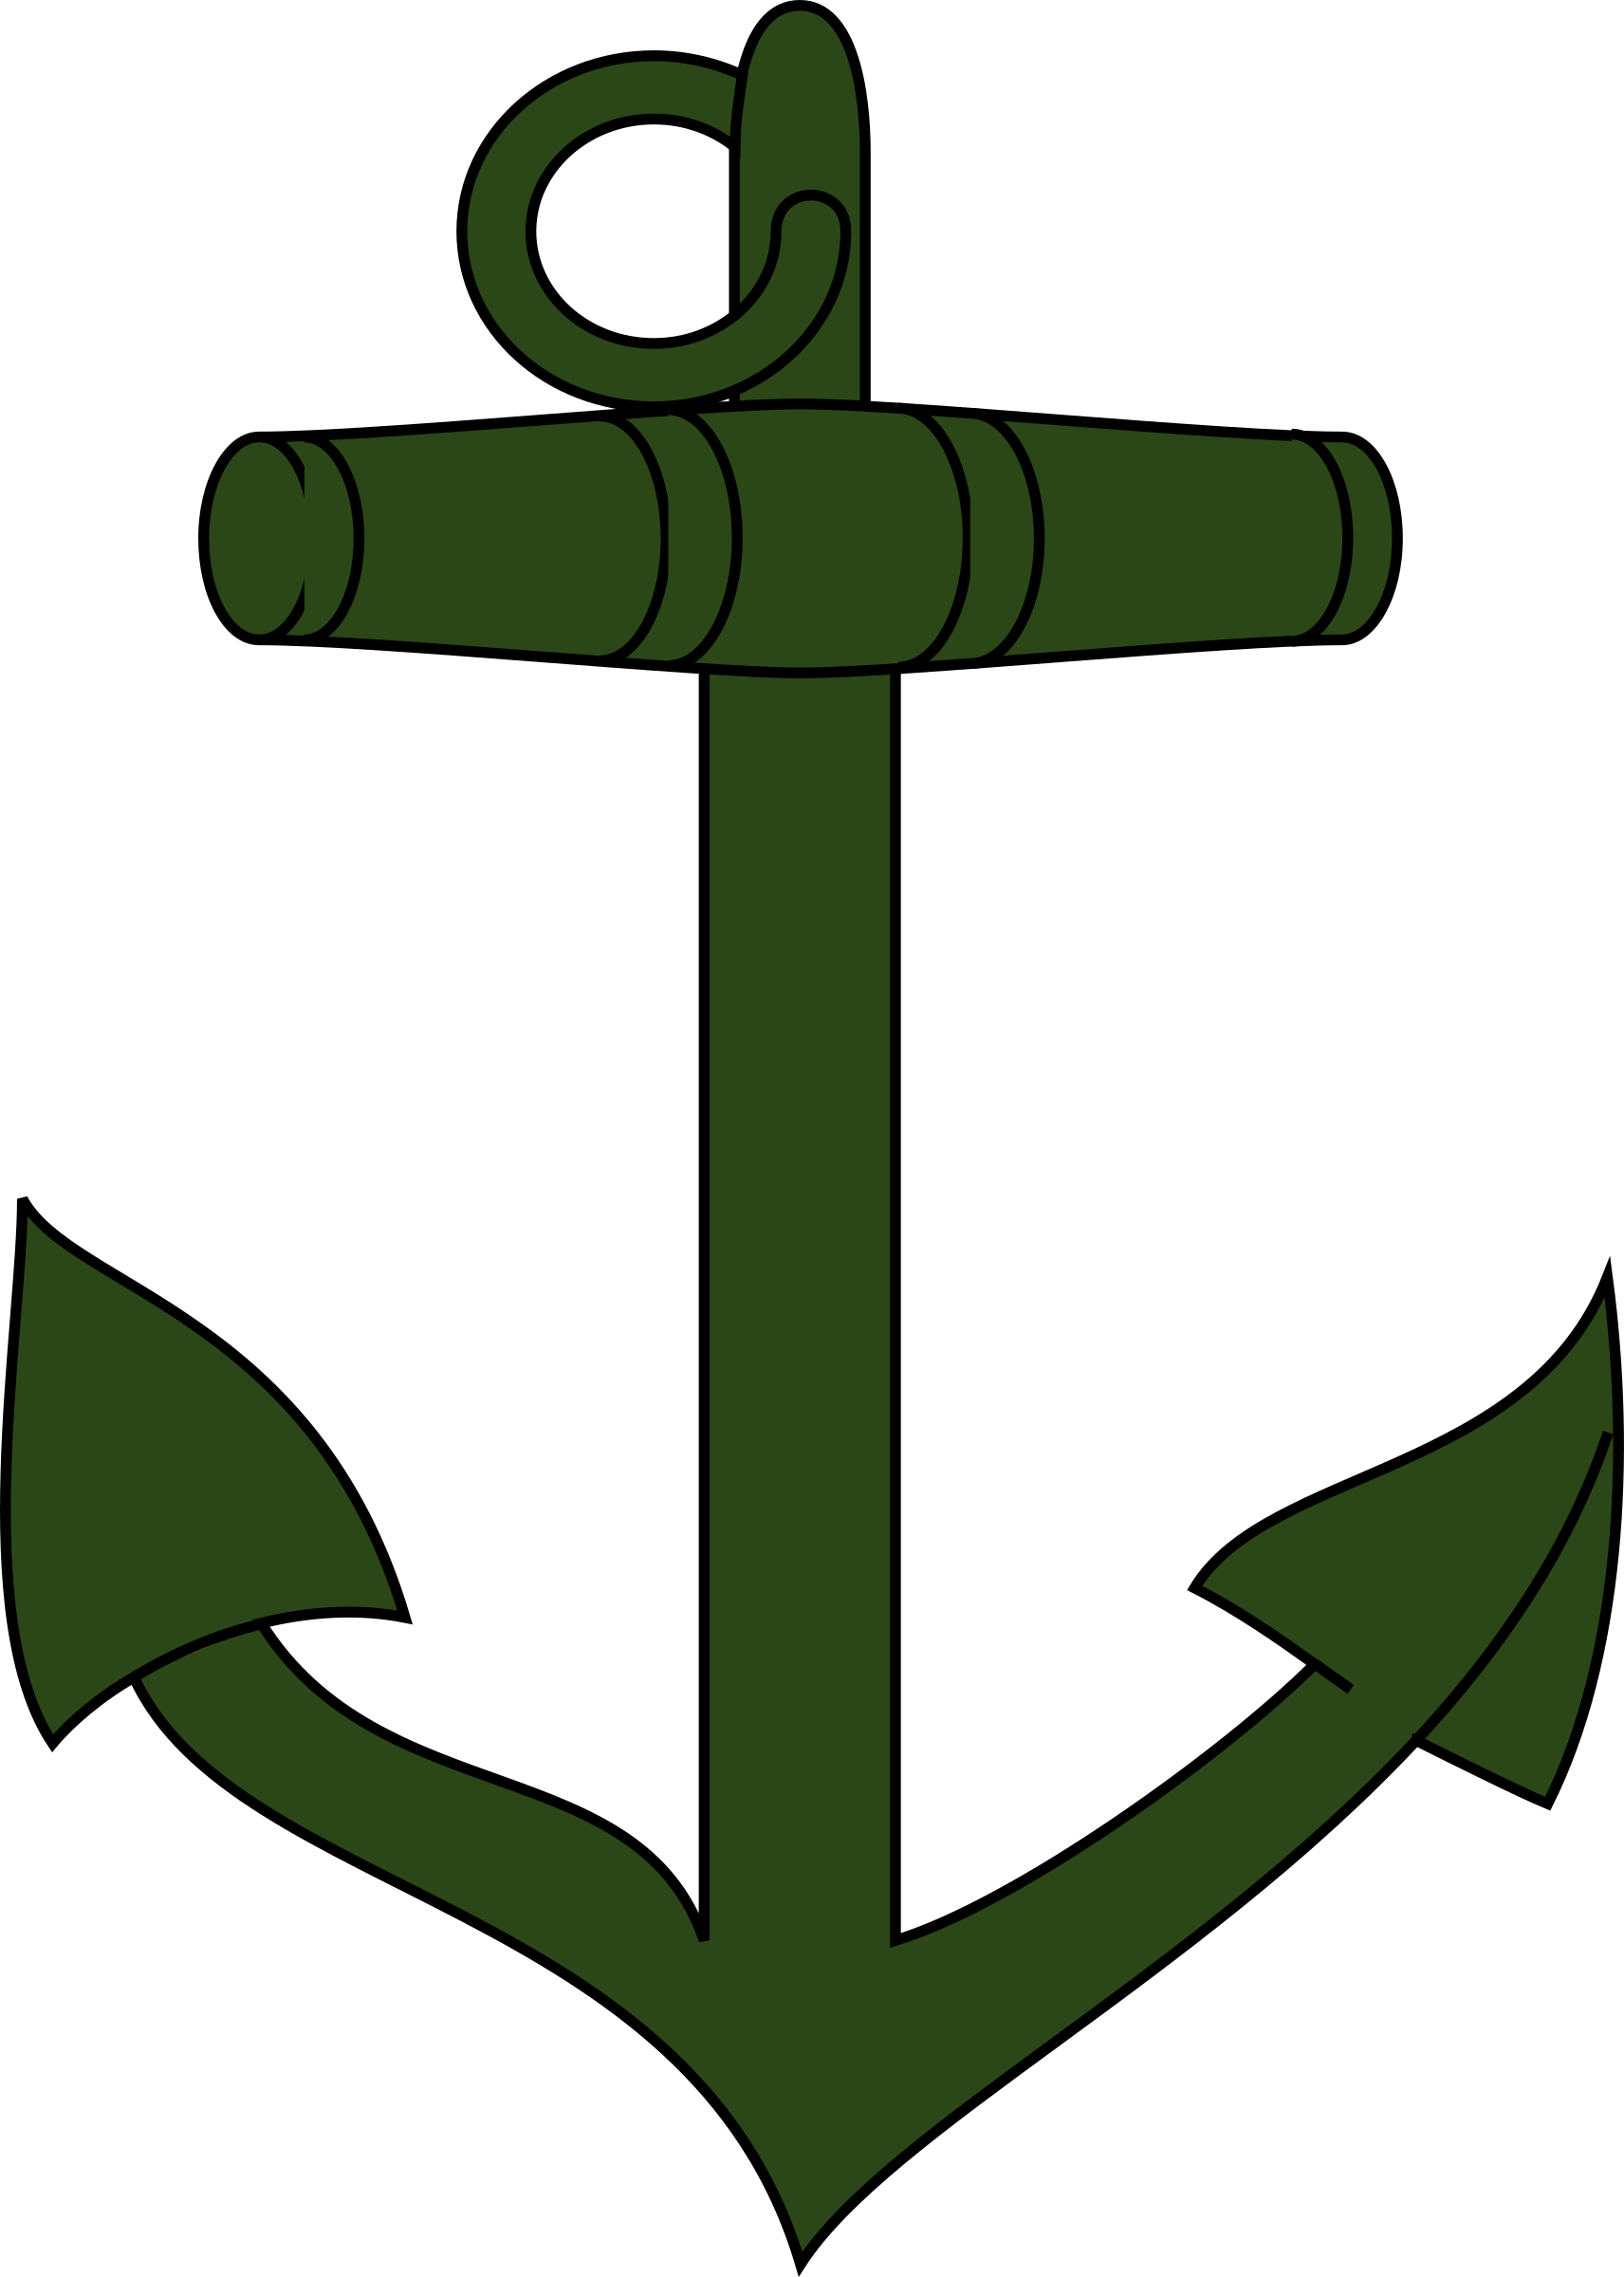 Green anchor vector clipart image - Free stock photo ...